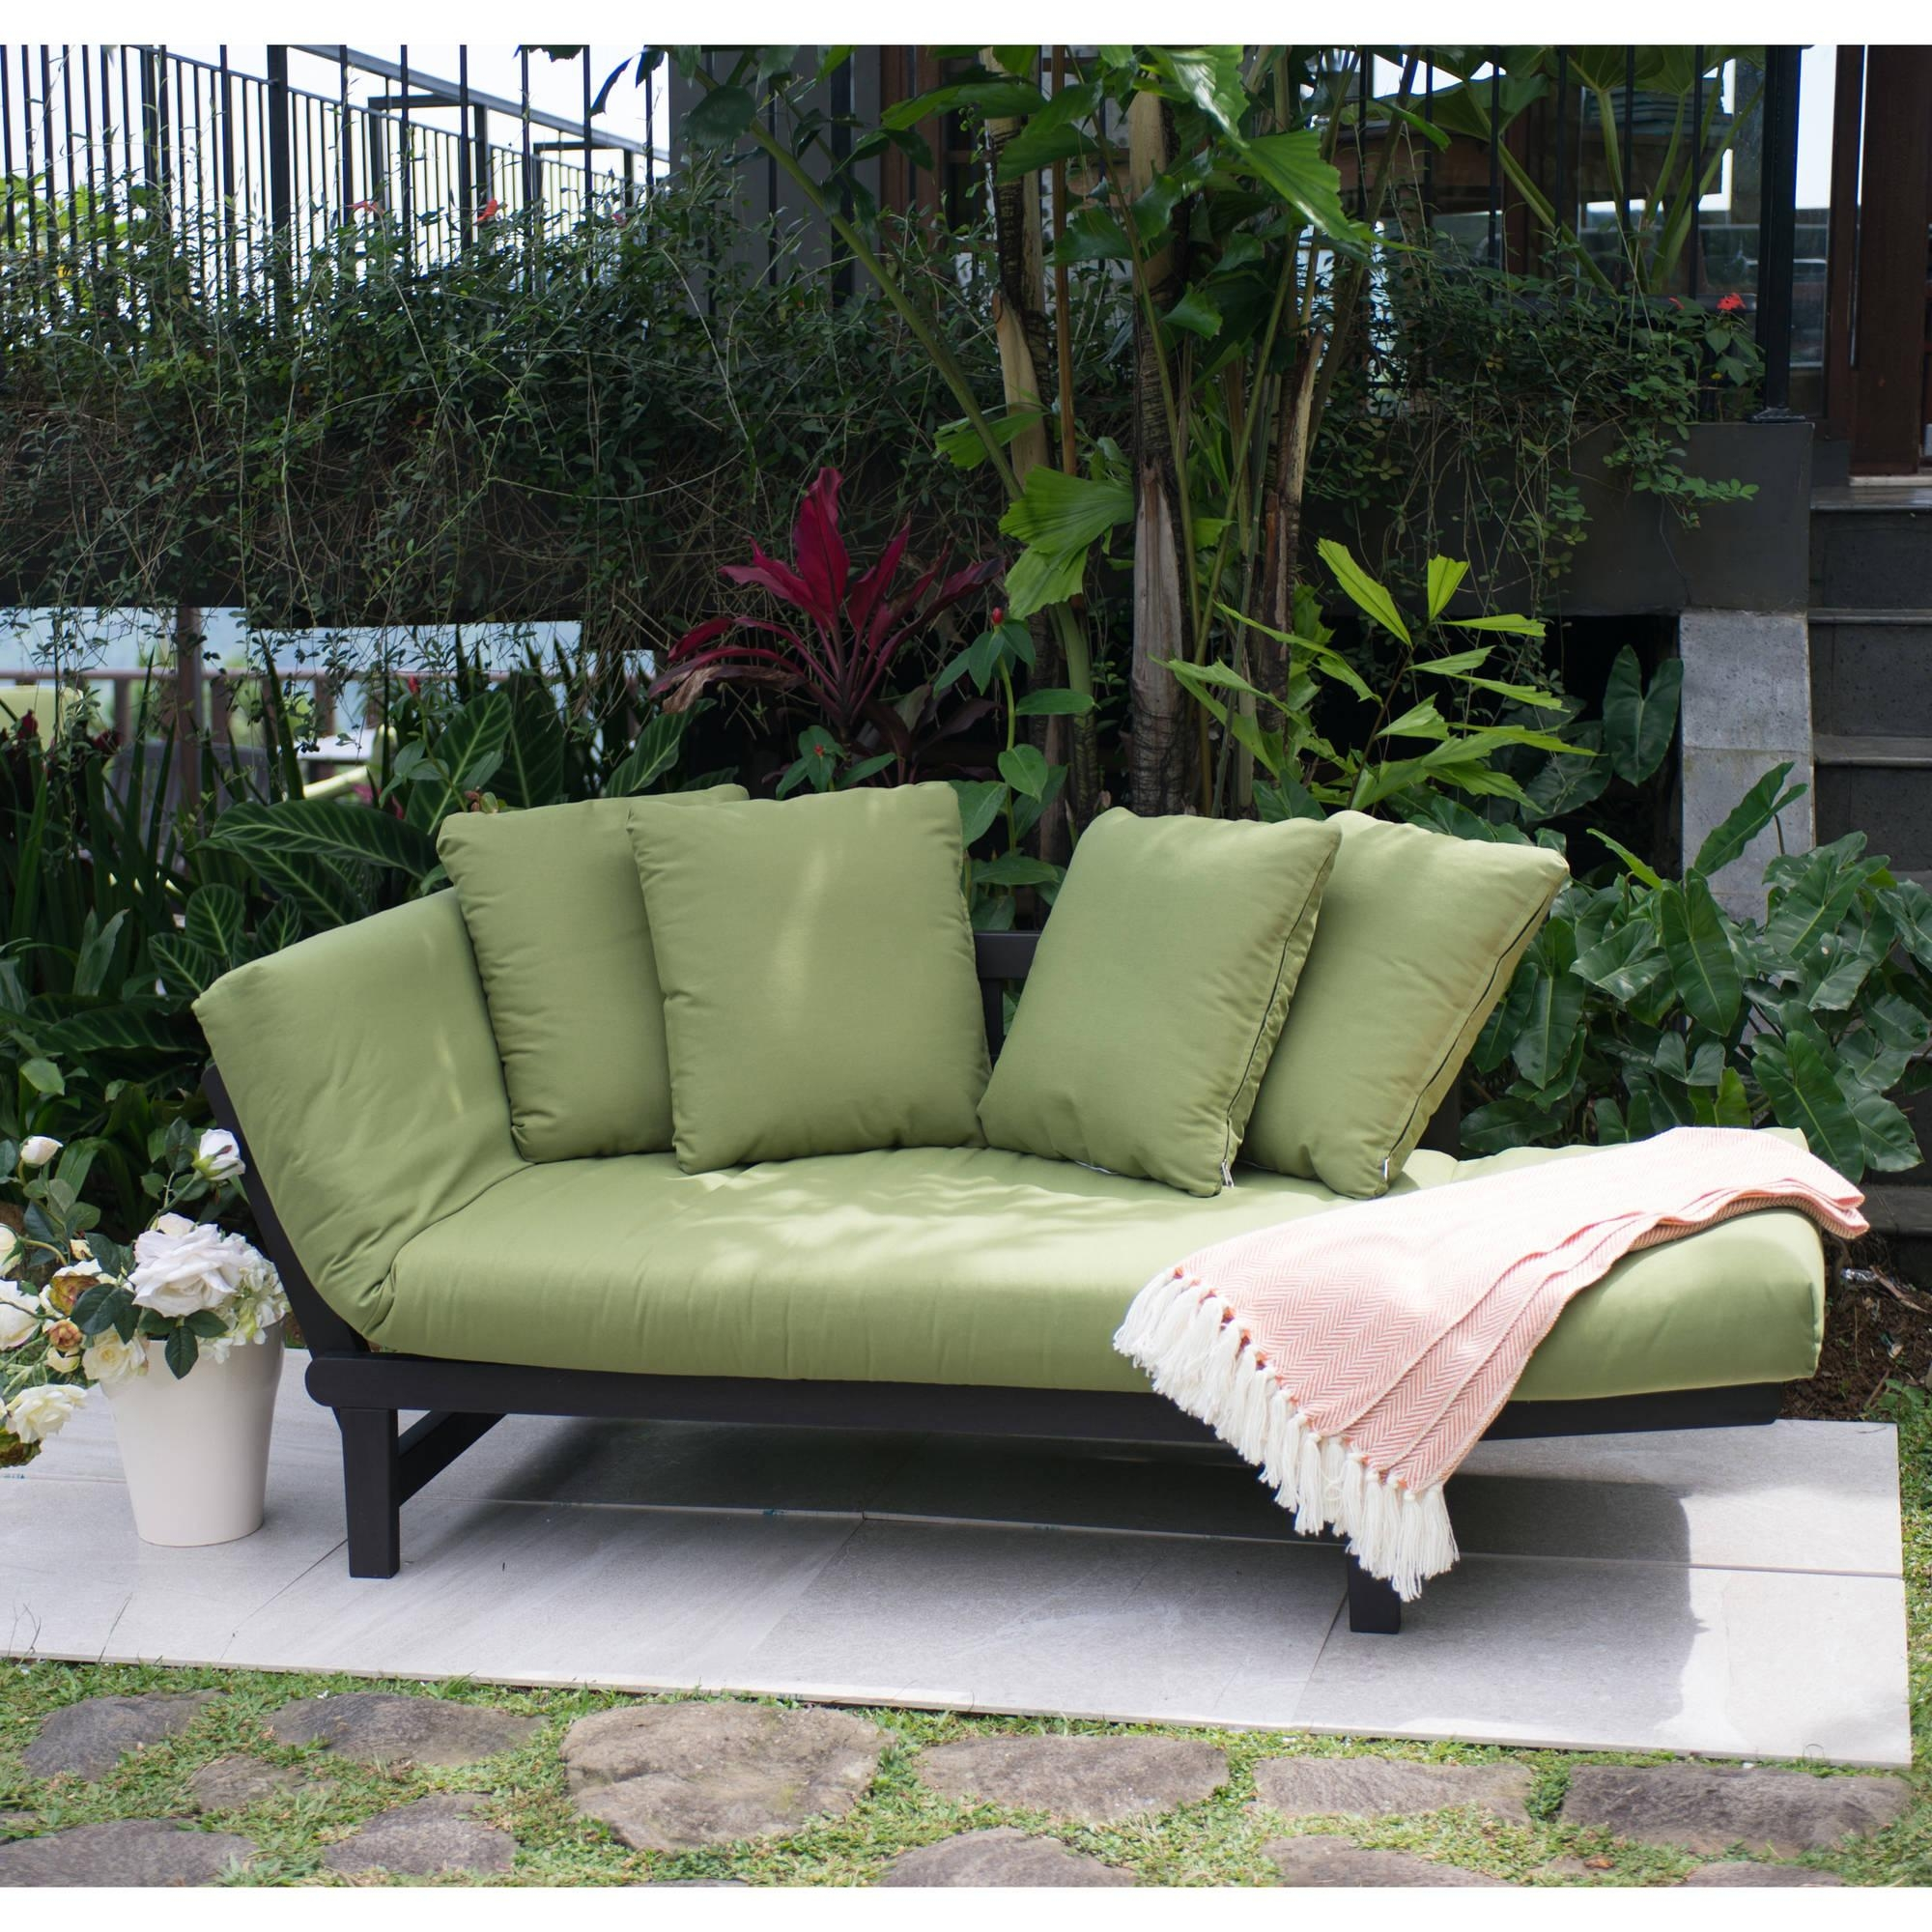 Sofas : Awesome Outdoor Dining Chair Cushions Outdoor Pillows Inside Cheap Patio Sofas (Image 18 of 22)